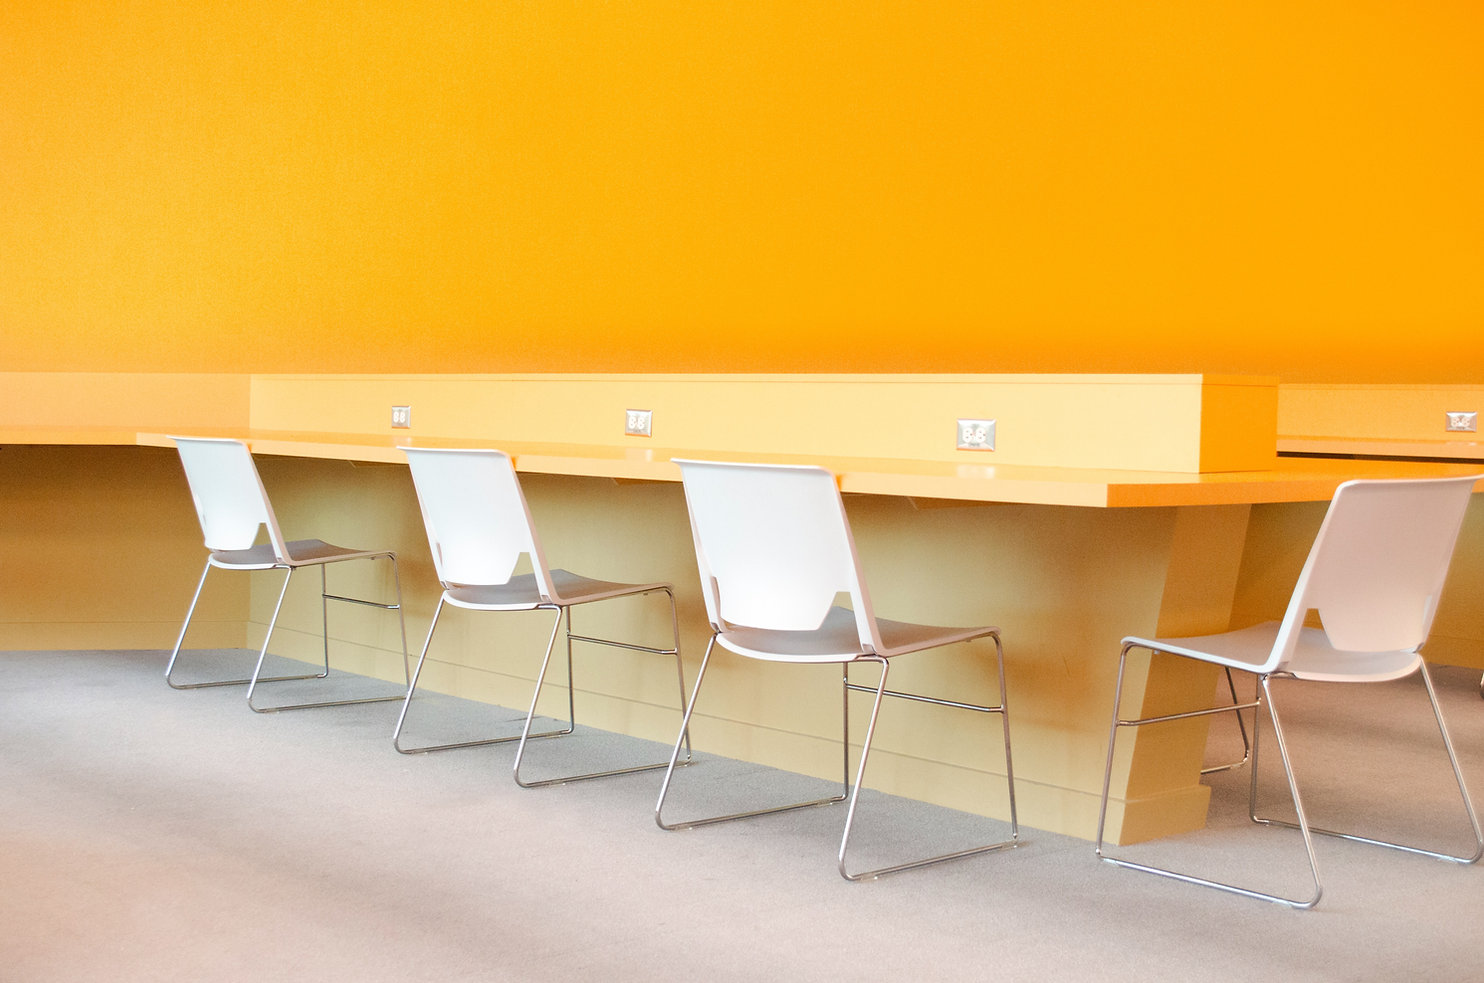 Image by Pacific Office Interiors